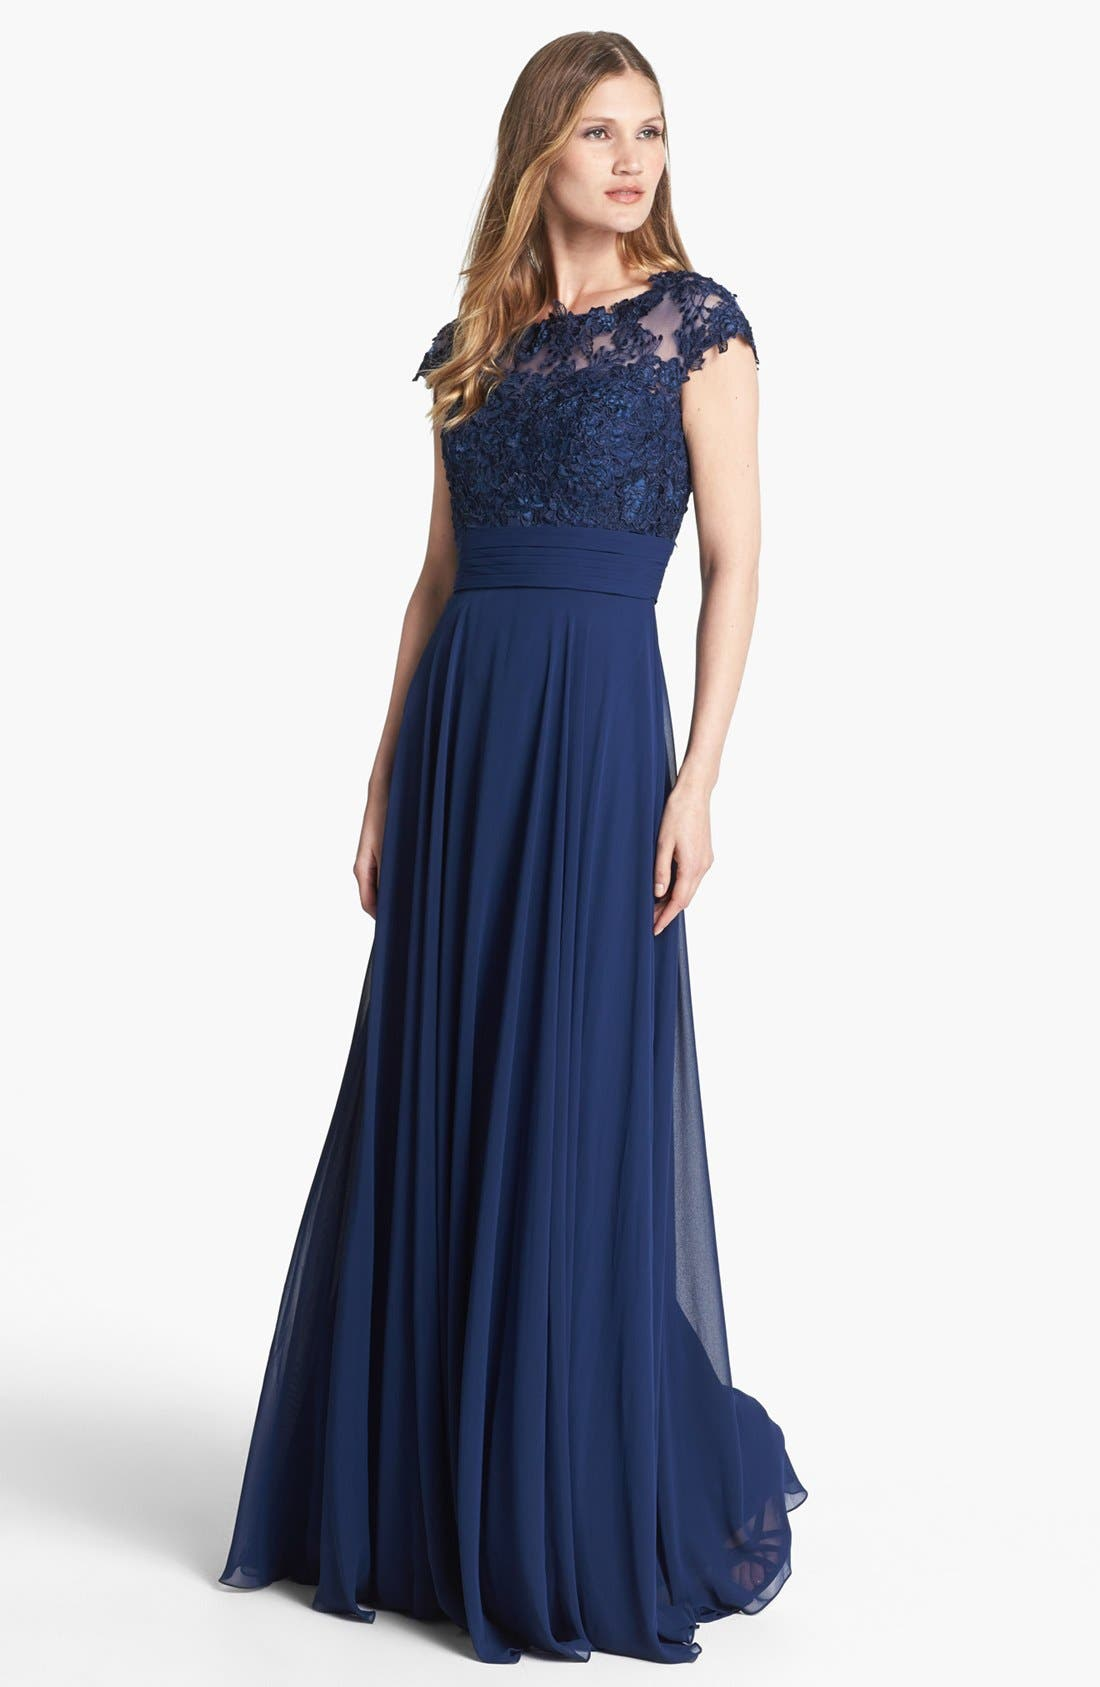 Alternate Image 1 Selected - La Femme Lace Bodice Ball Gown